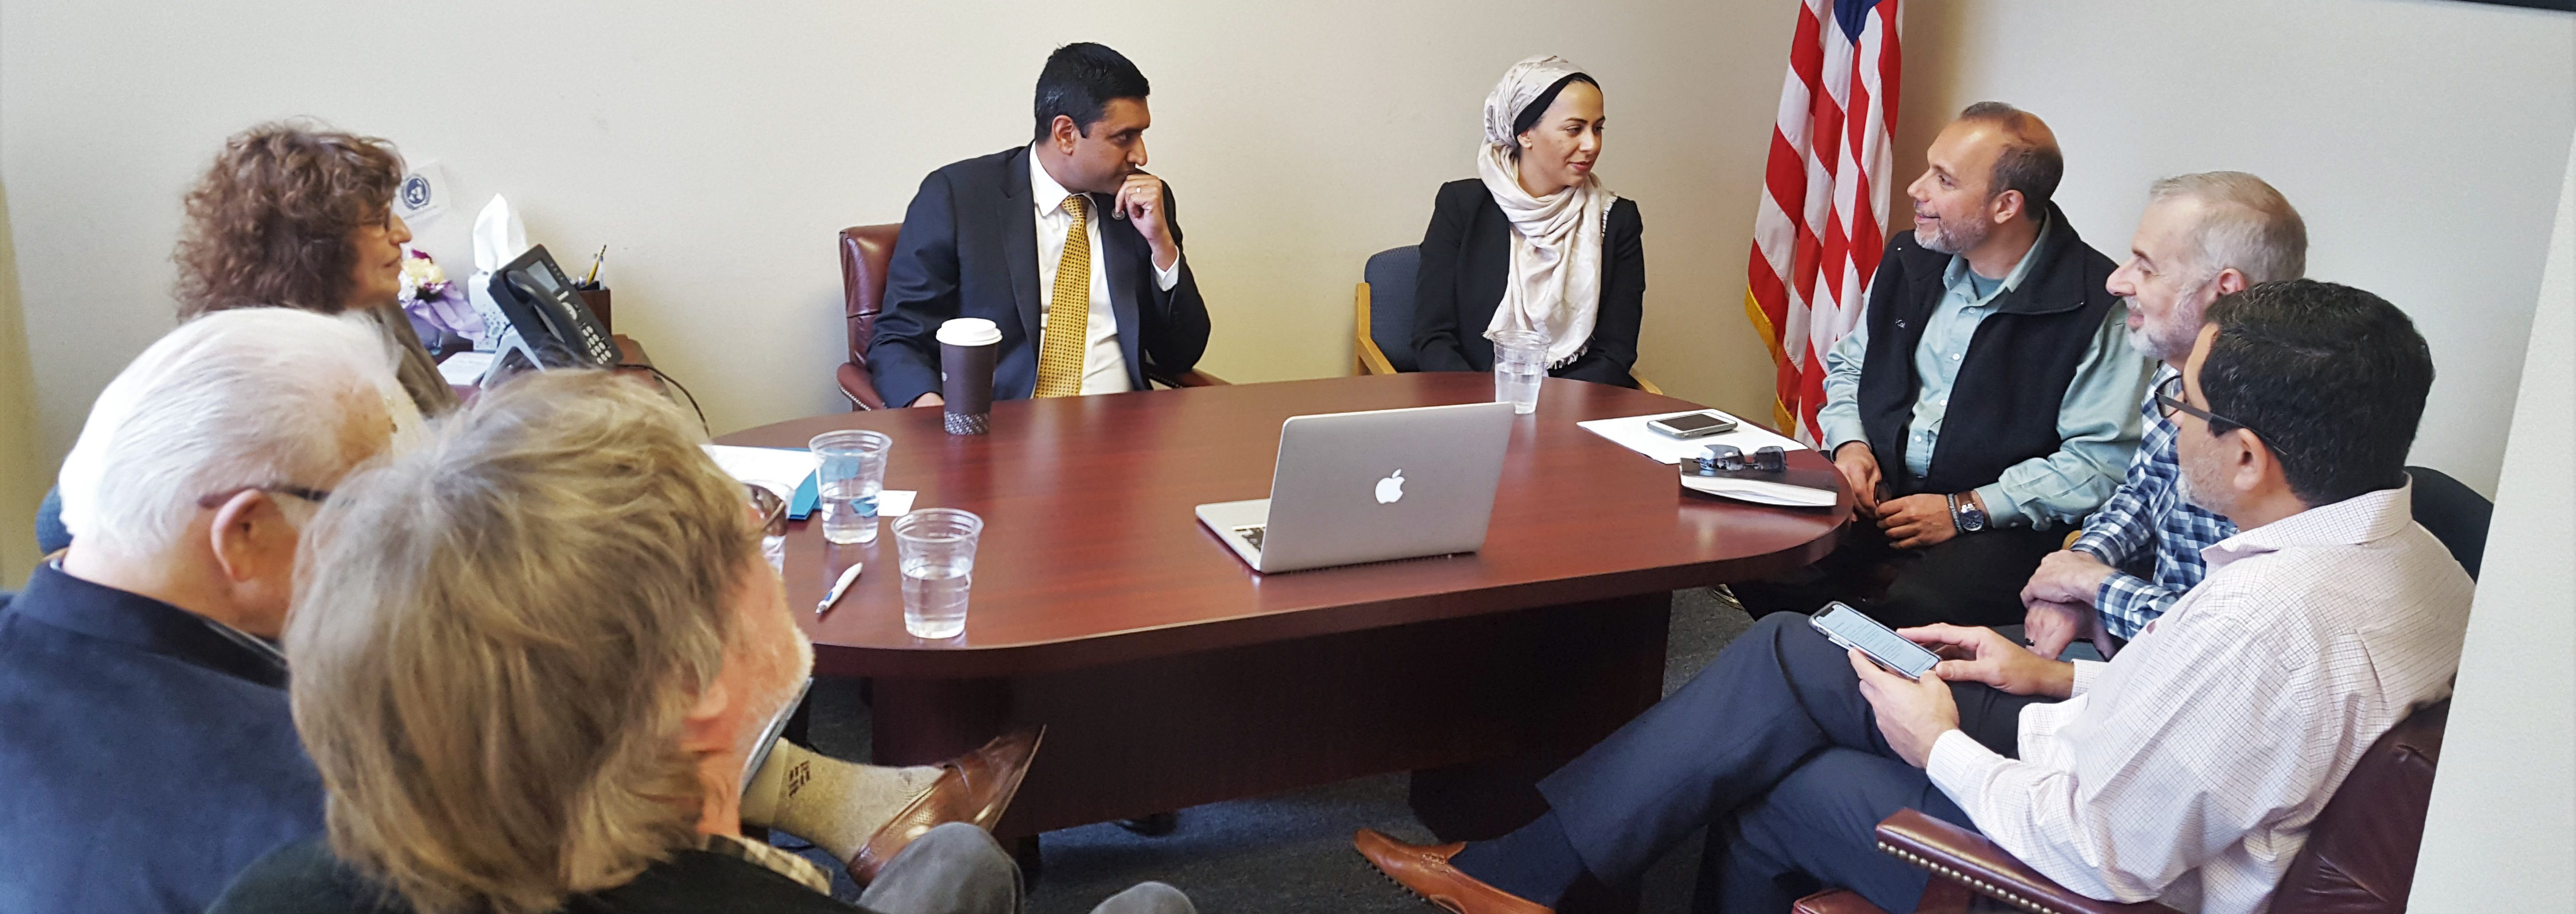 Constituent Meeting with Congressman Ro Khanna